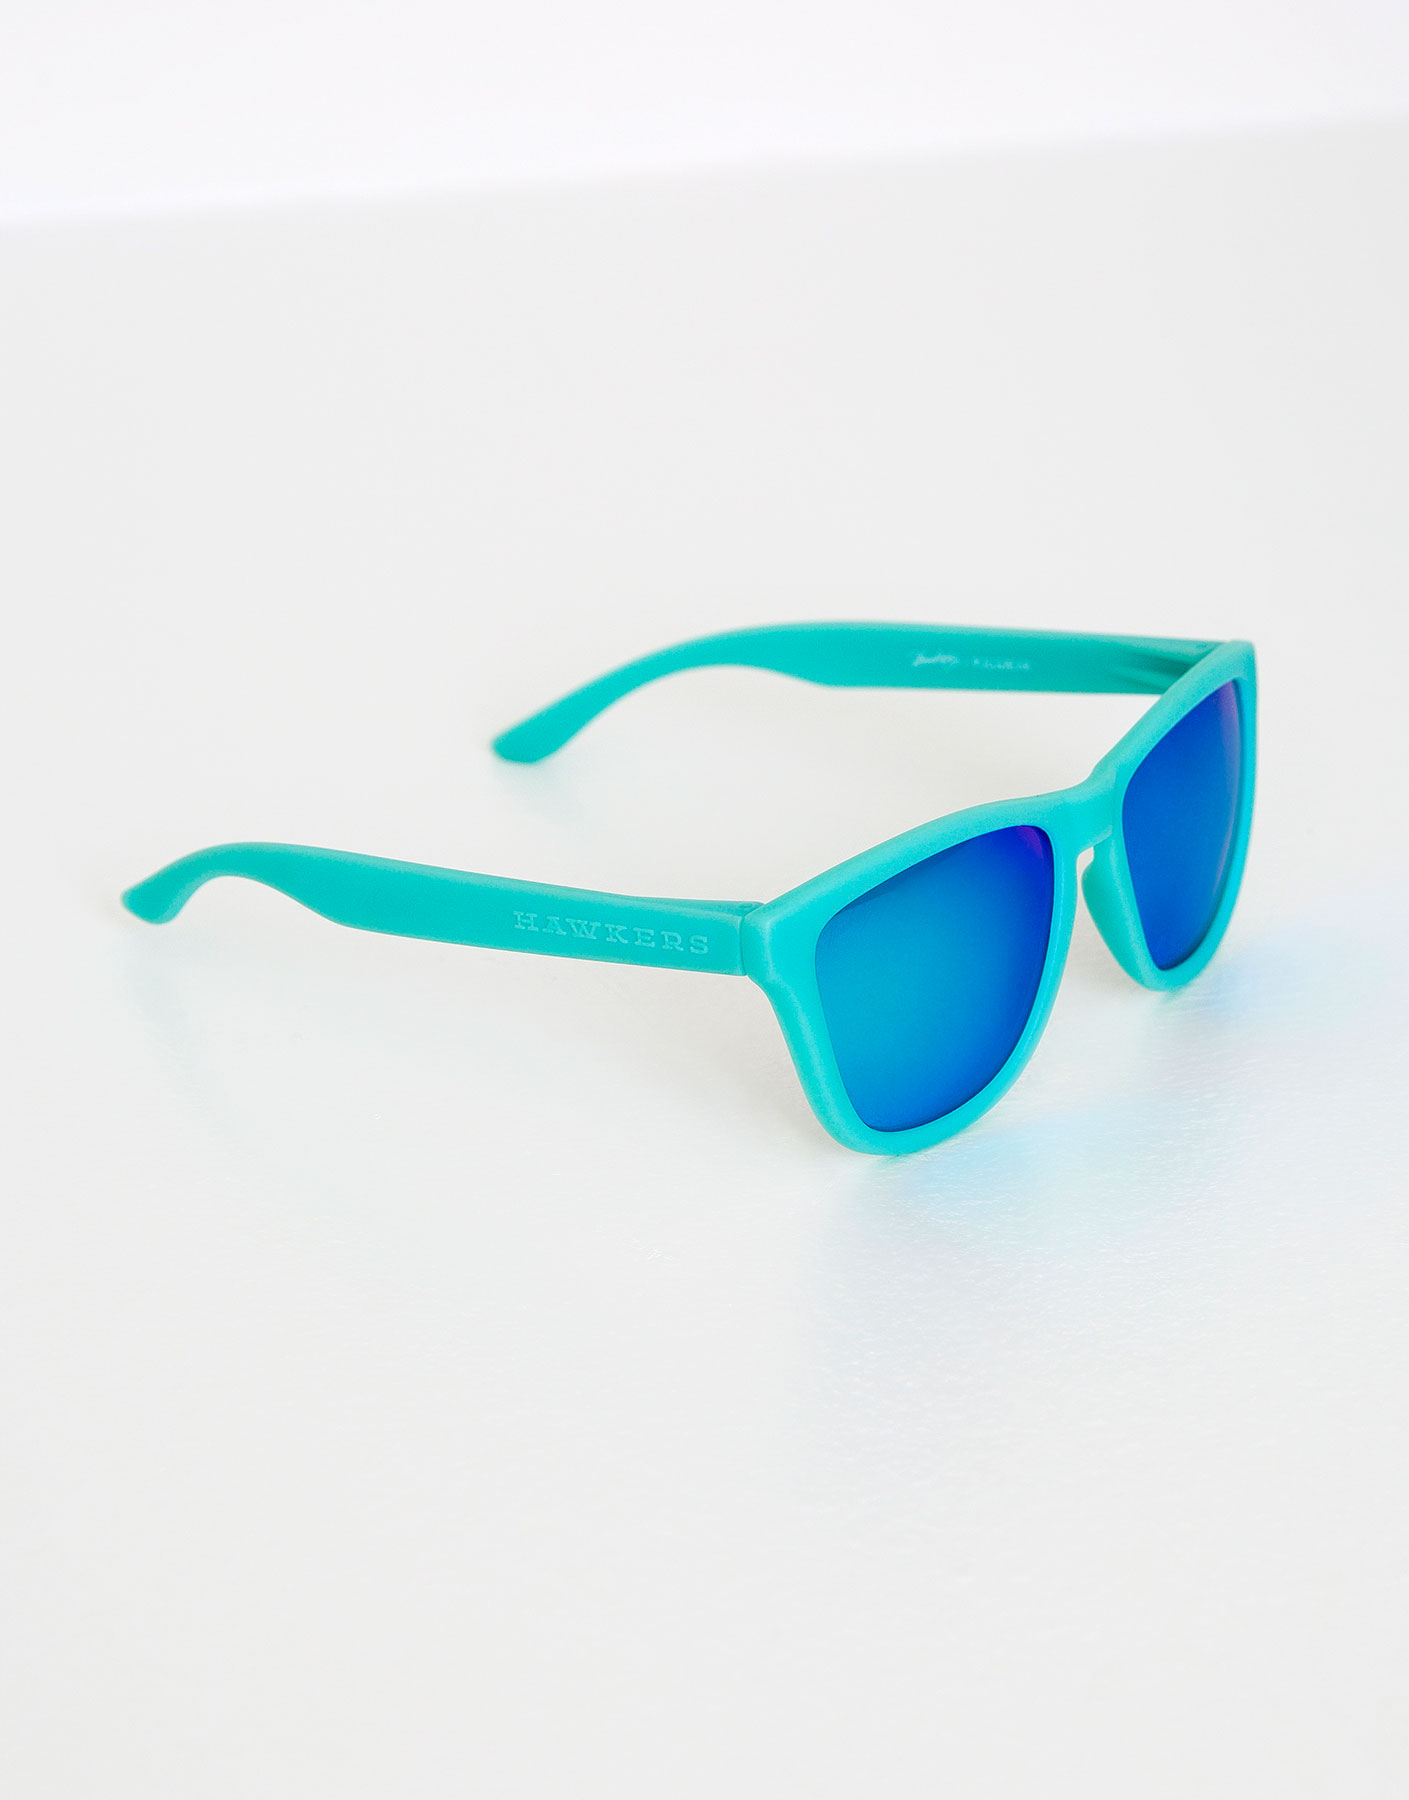 Lentes de sol hawkers turquoise clear blue one